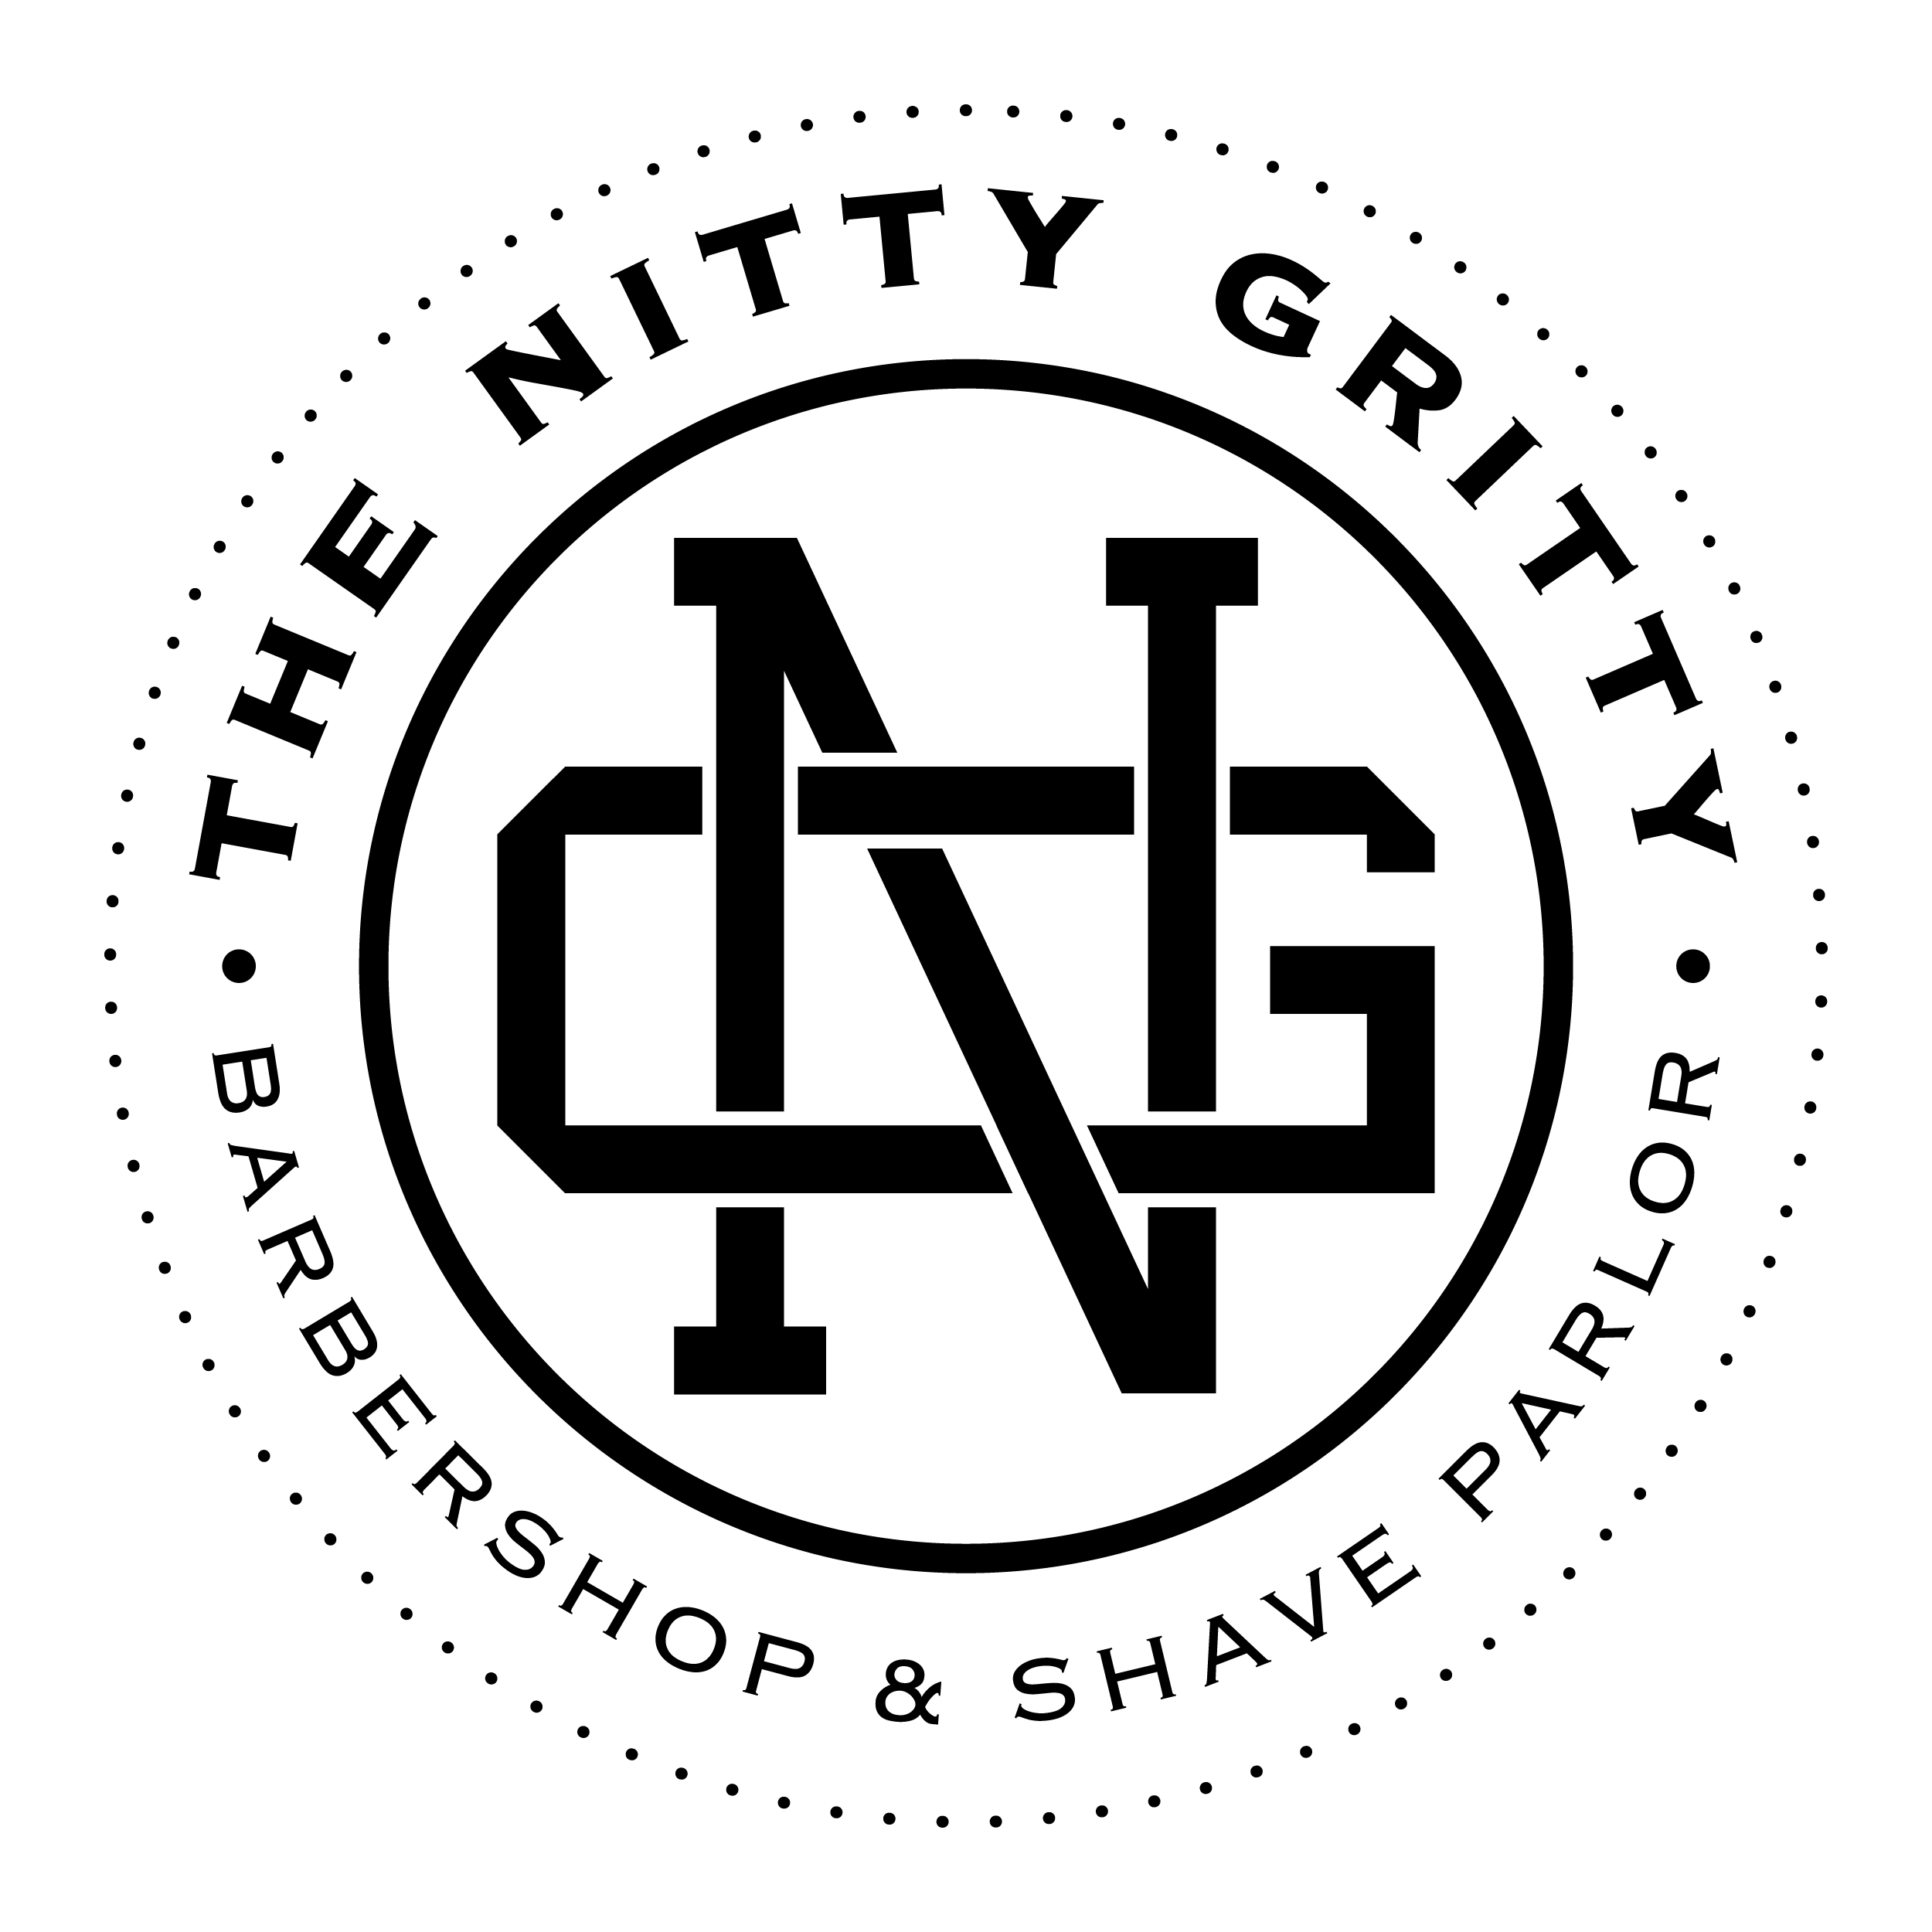 Design logo for local barbershop in Yorkville IL. Artwork used to window decals, custom embroidered accessories, clothing/merchandise, and more.